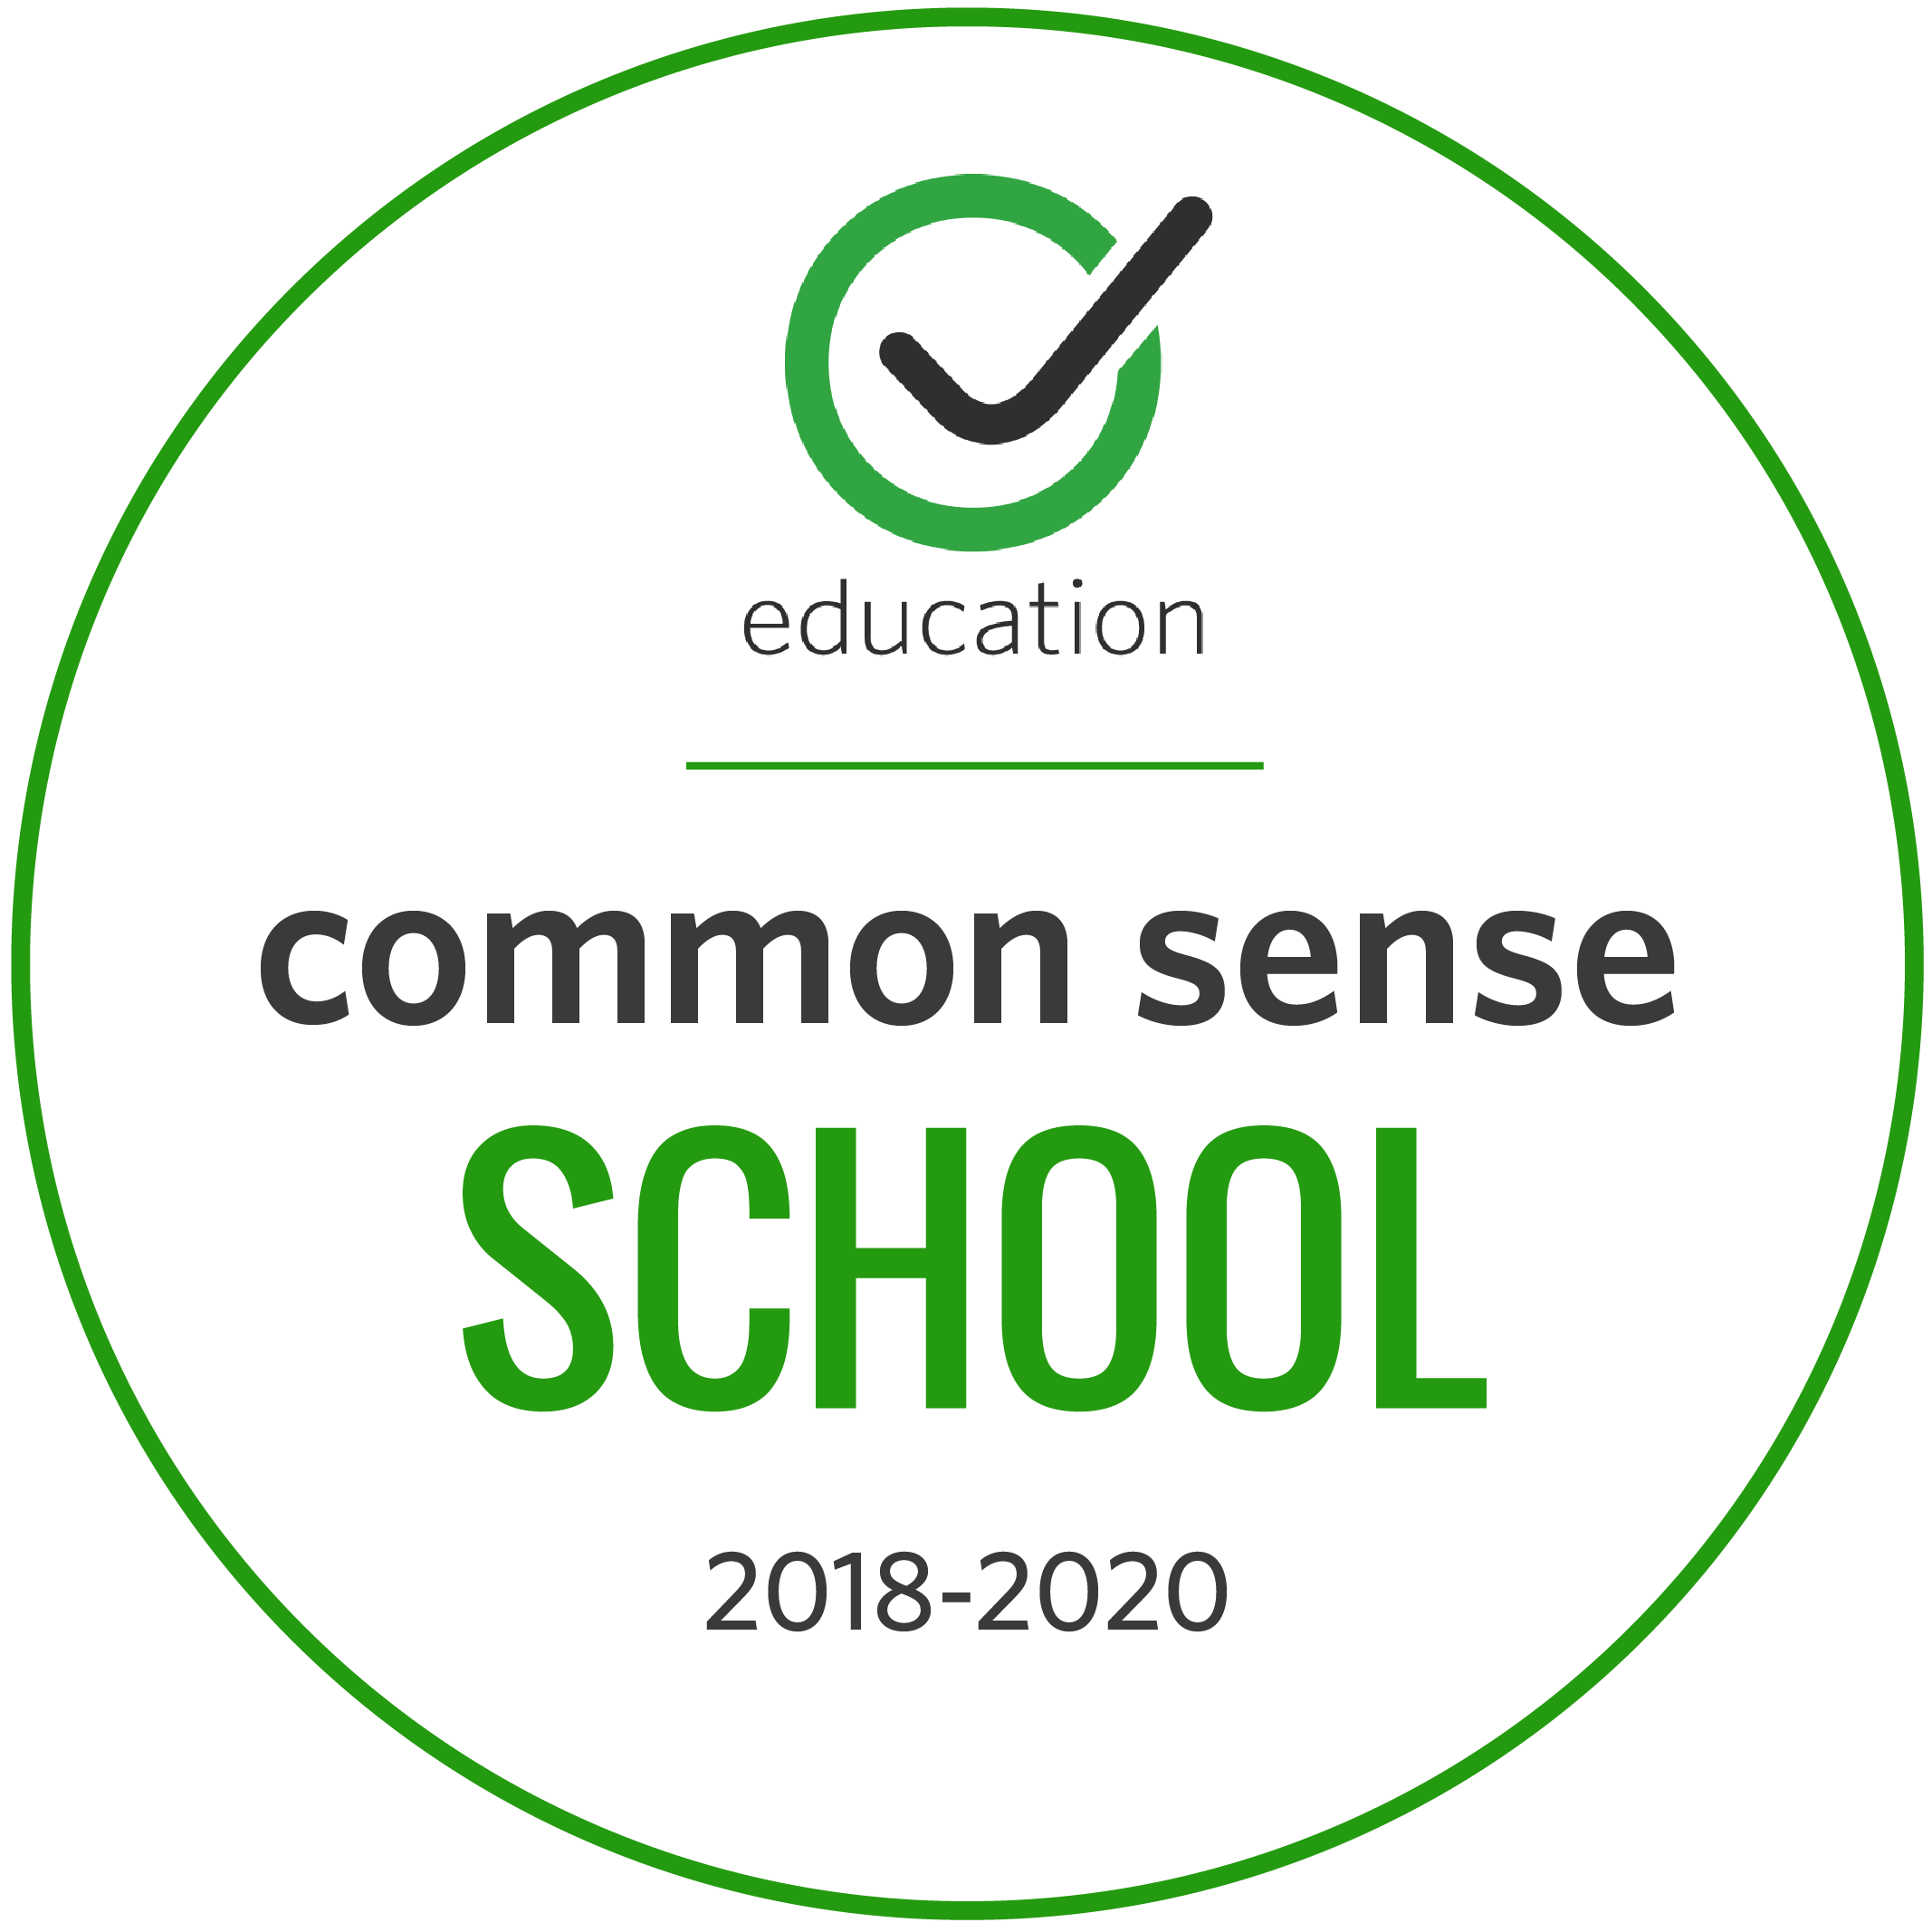 Common Sense School 2018-2020